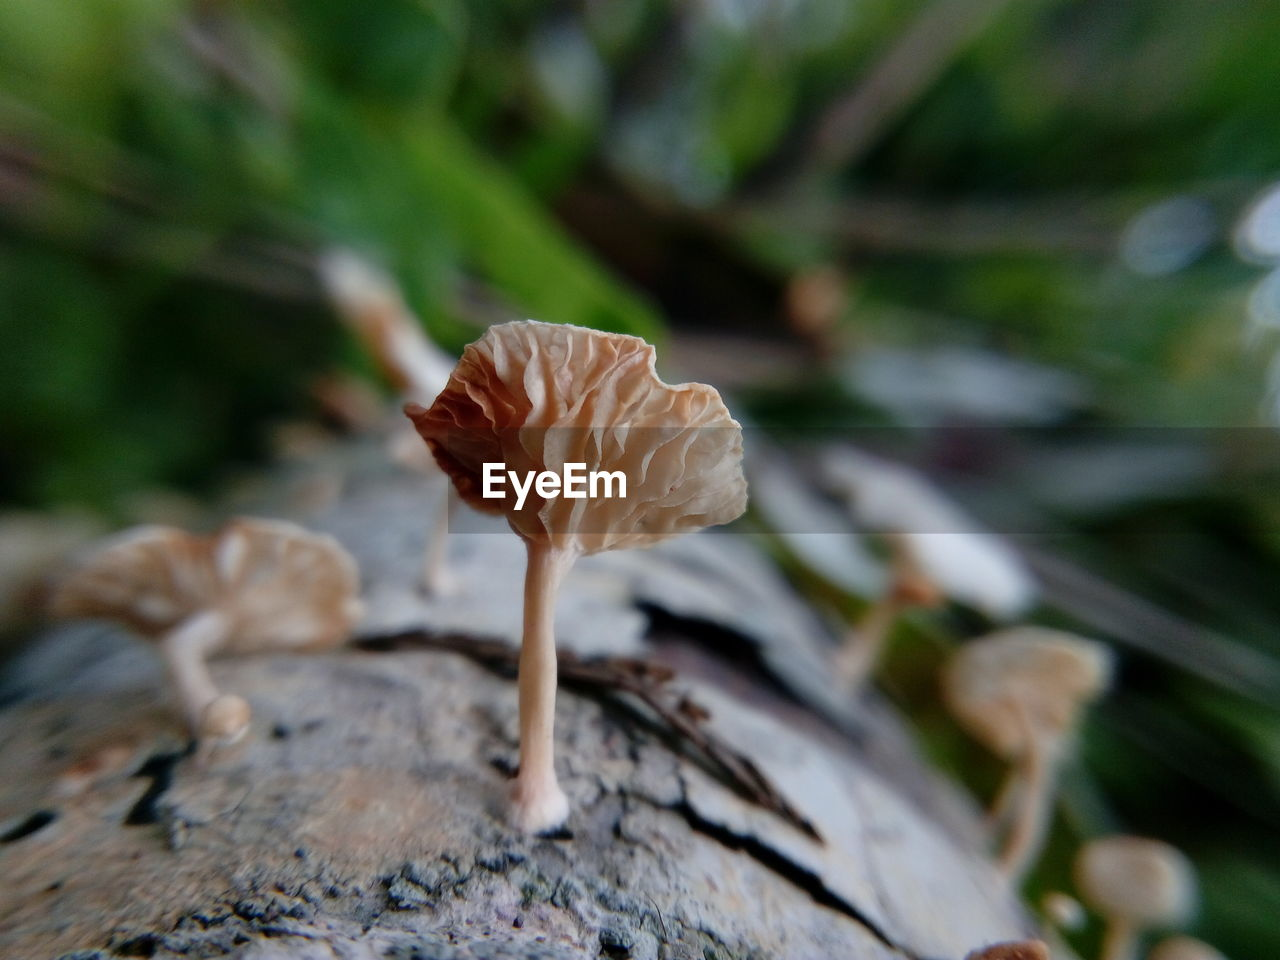 Close-up of mushroom growing on land